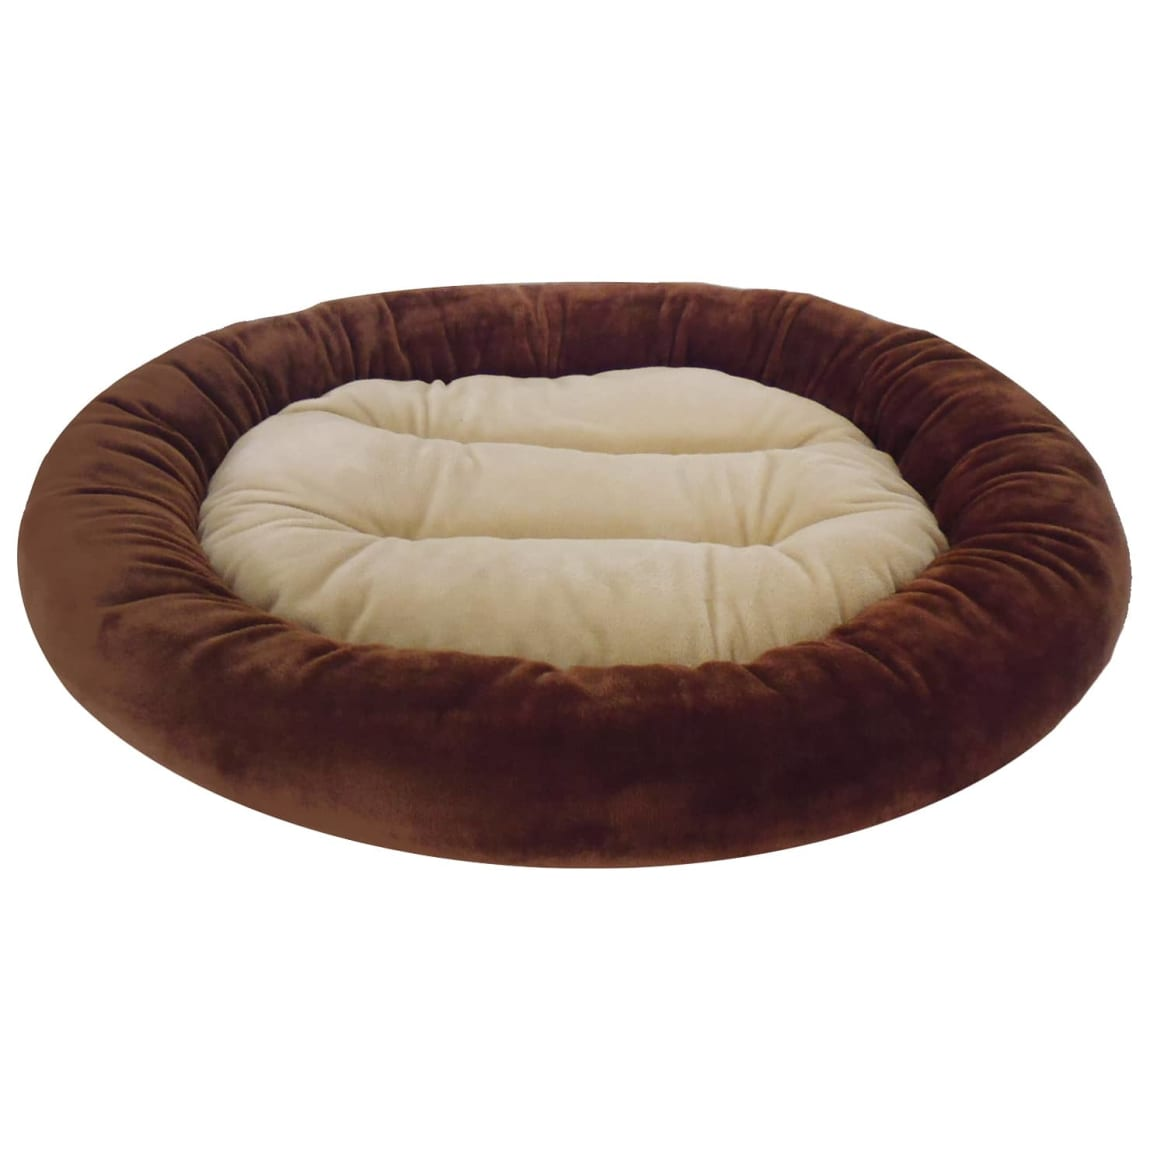 Oval Snuggle Pet Bed - Brown